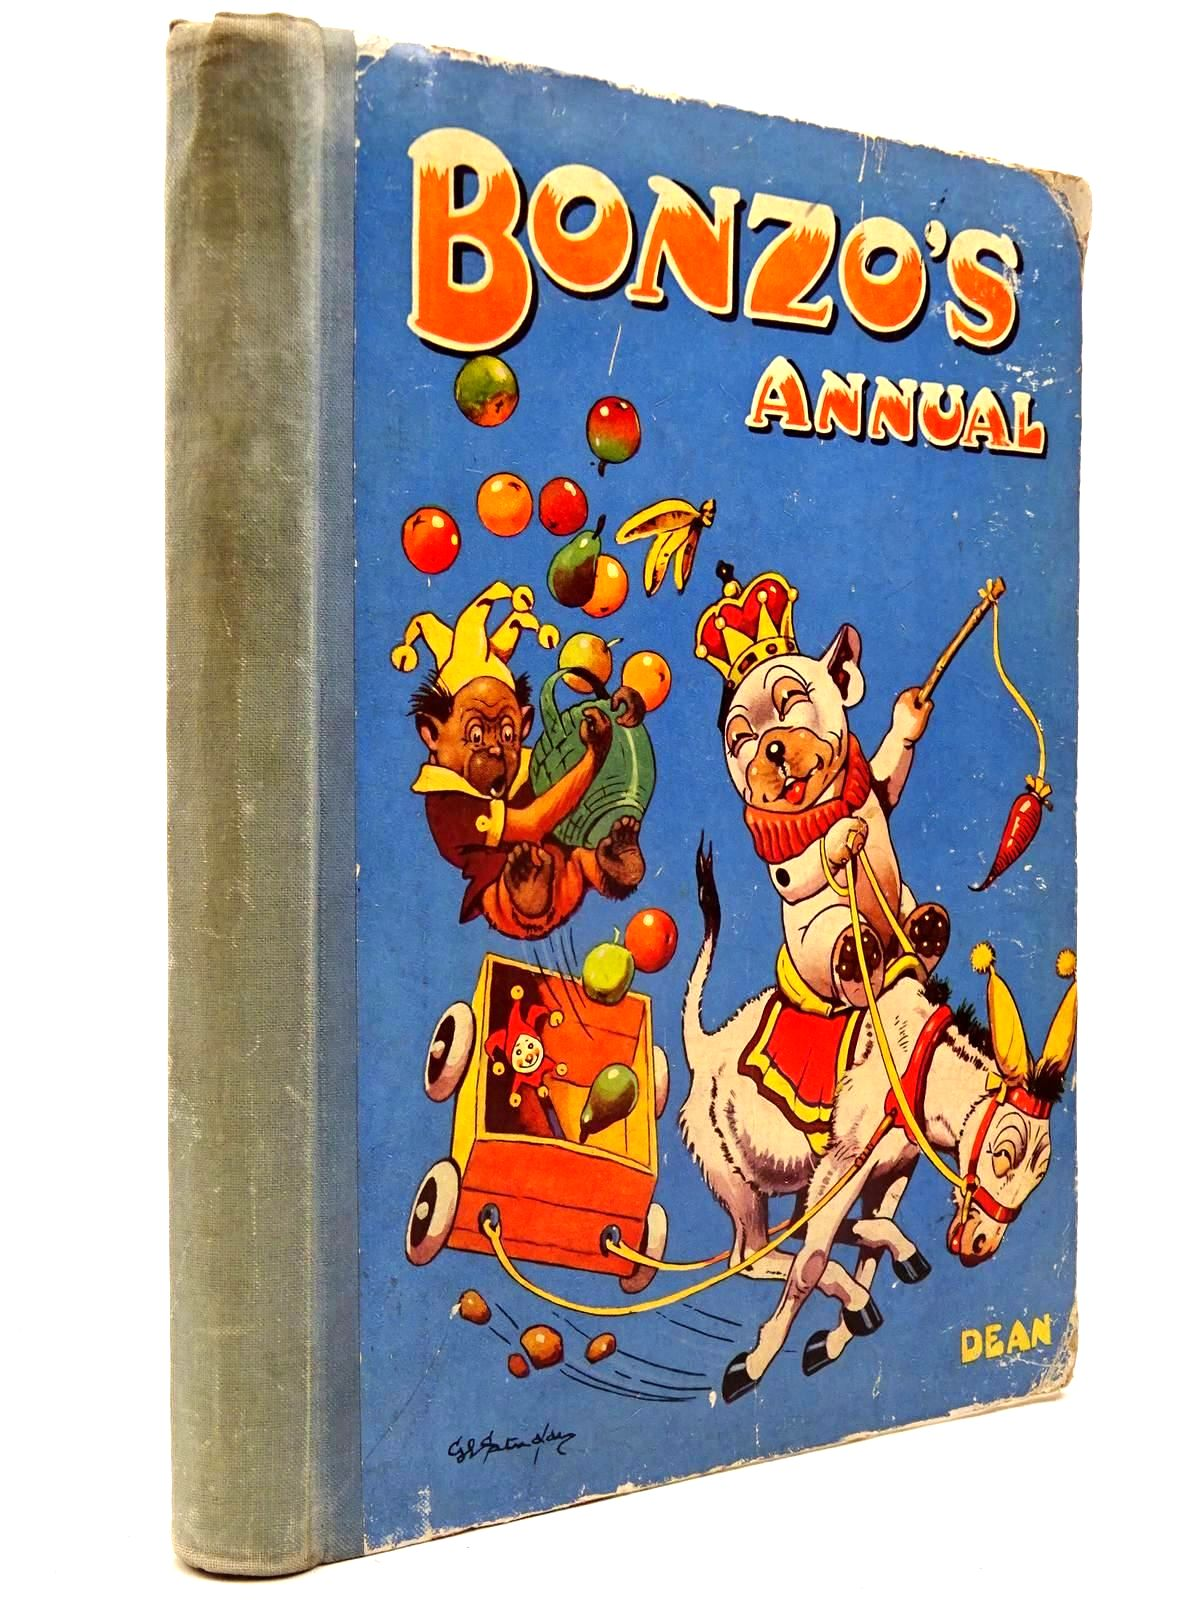 Photo of BONZO'S ANNUAL 1948 written by Studdy, G.E. illustrated by Studdy, G.E. published by Dean & Son Ltd. (STOCK CODE: 2130320)  for sale by Stella & Rose's Books